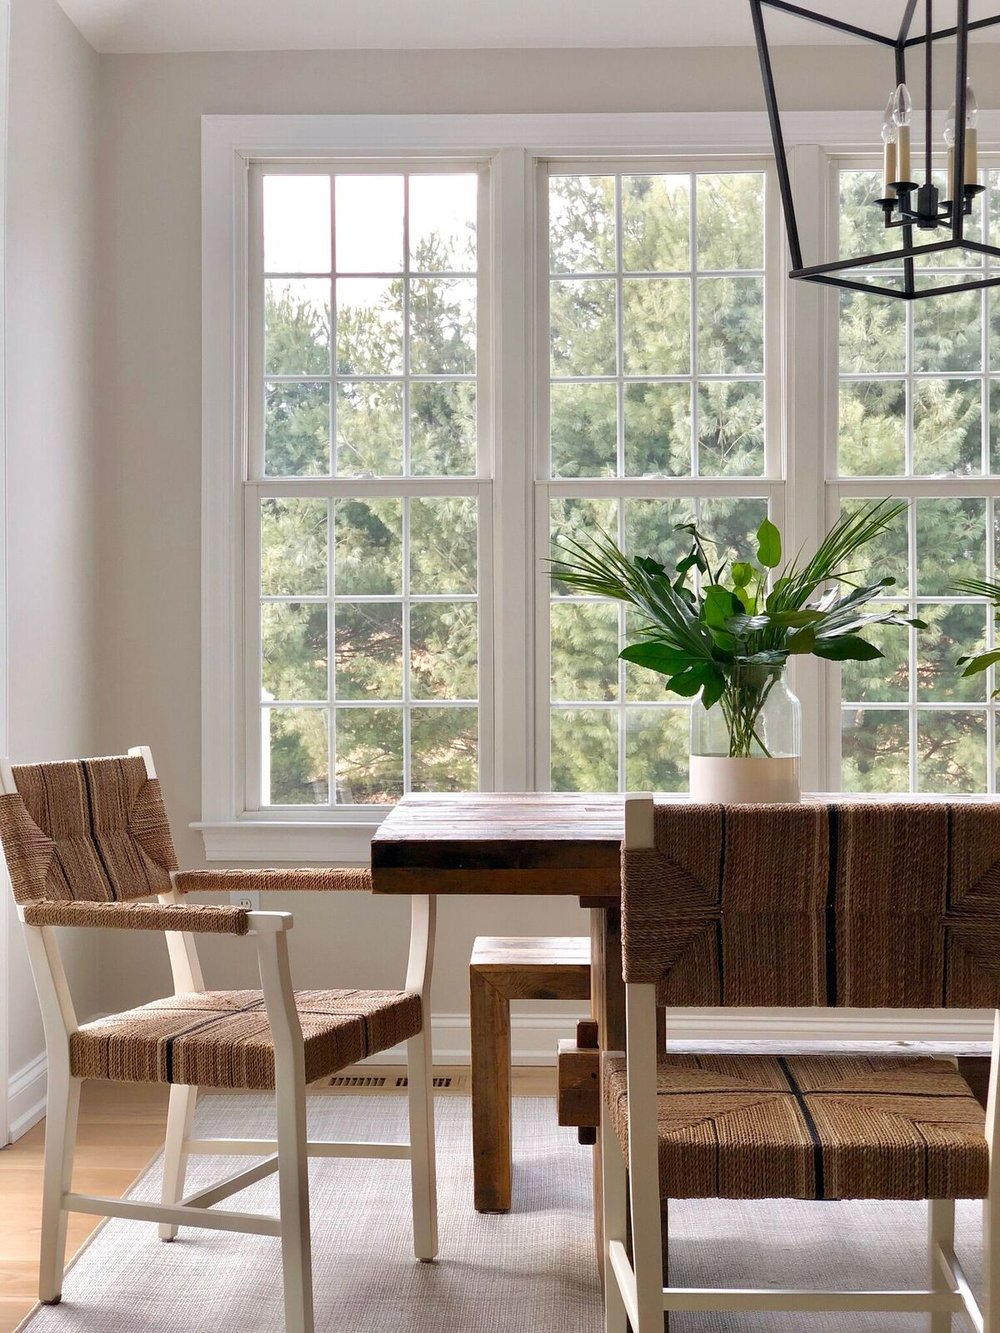 stephanie-kraus-designs-mainline-pa-project-wood-chairs-breakfast area.jpg